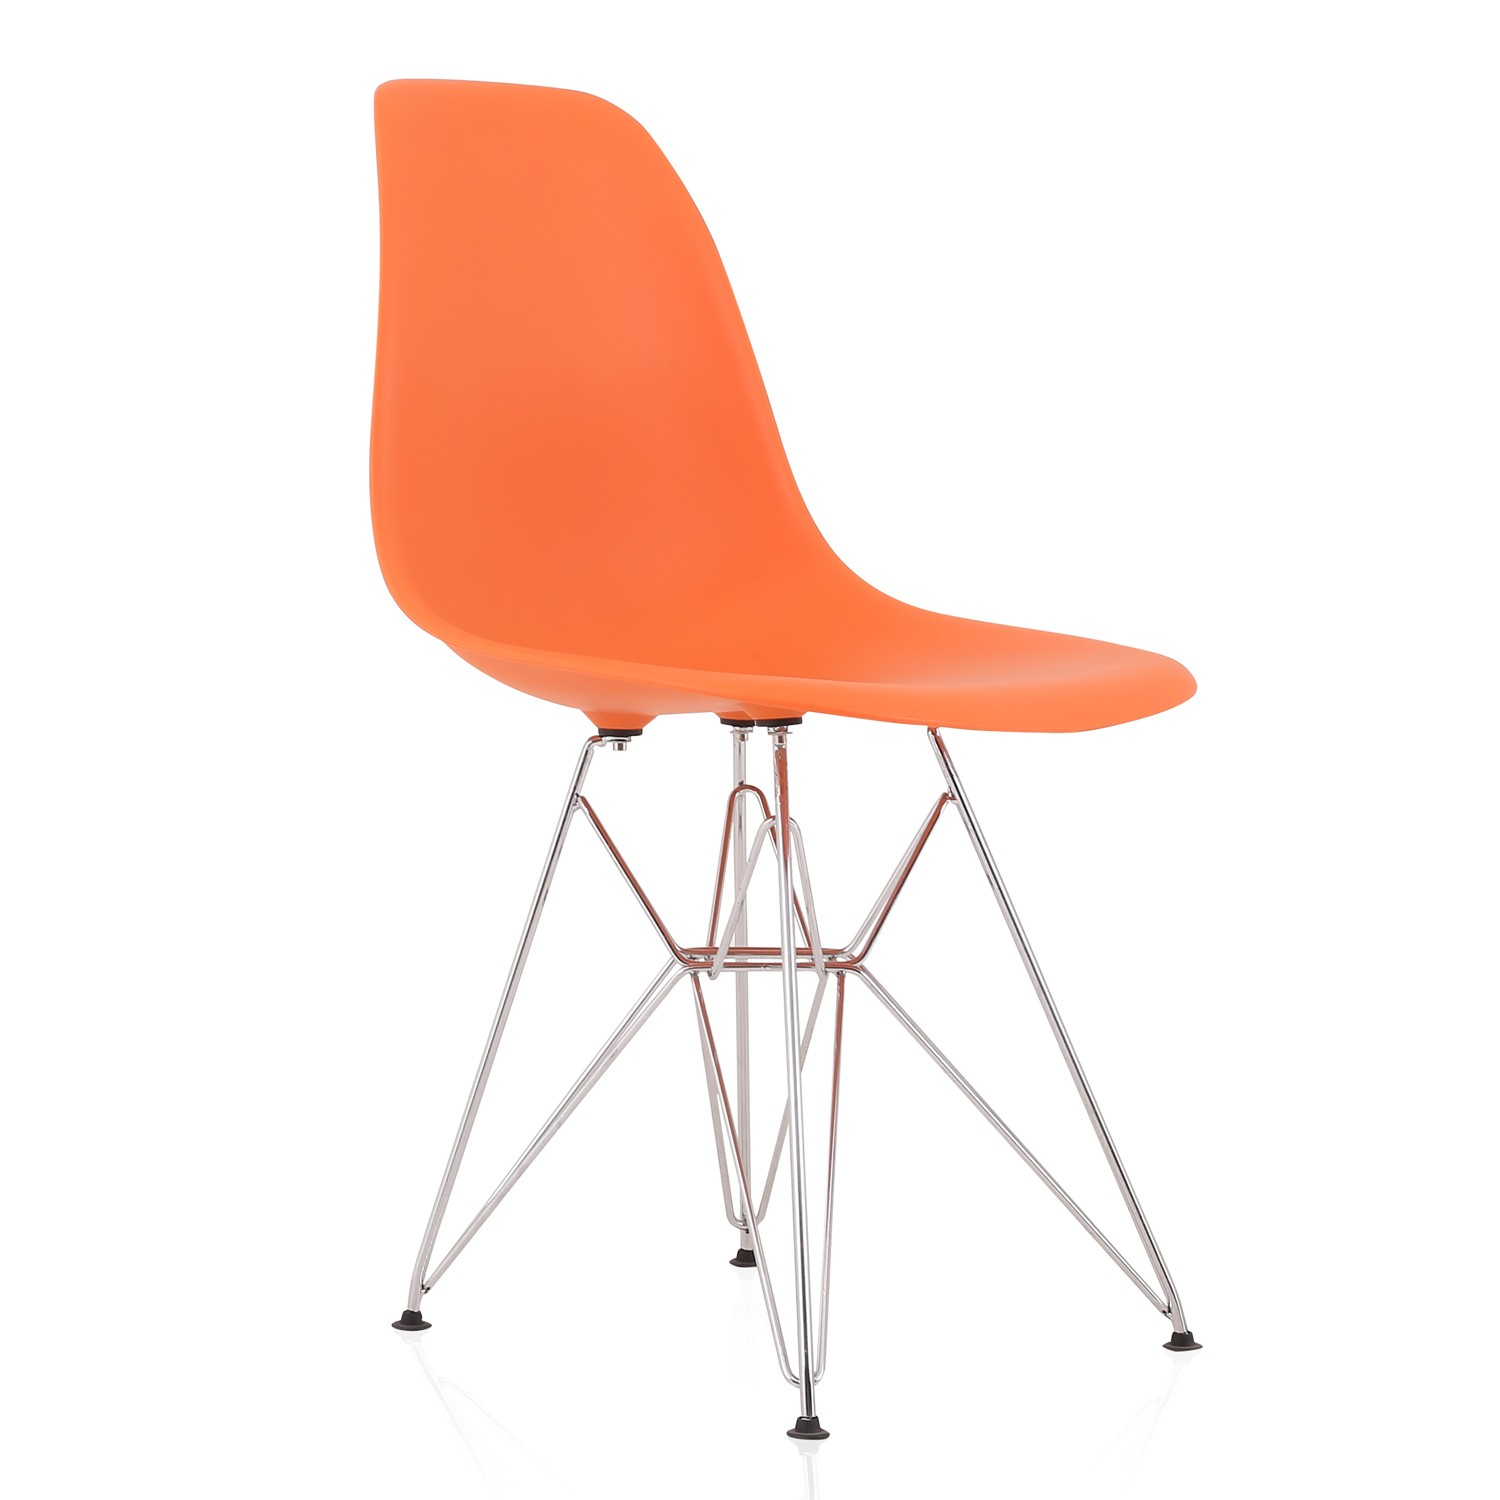 plastic chairs with steel legs vinyl office chair eames style dsr molded orange dining shell